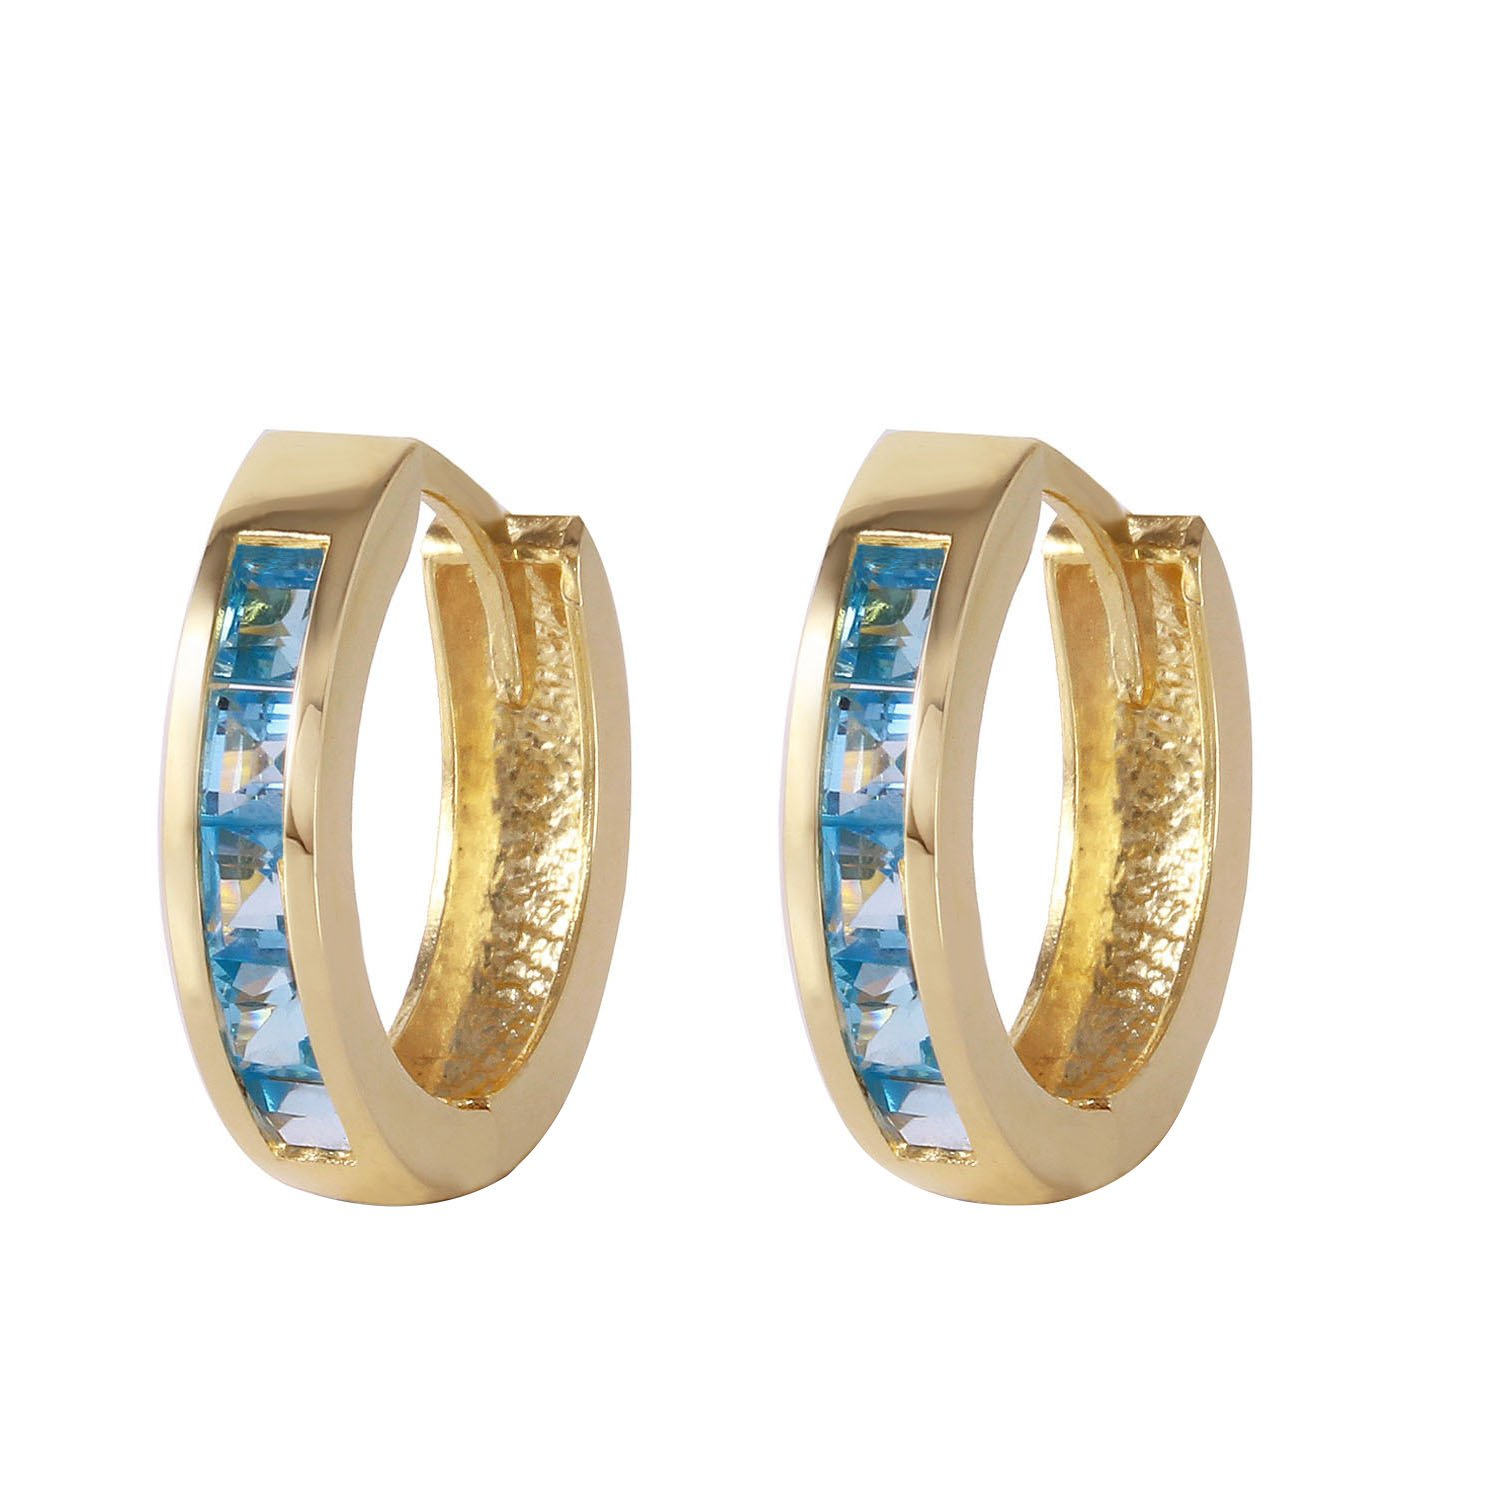 Galaxy Gold Genuine 14k Solid Gold Hoop Huggie Earrings with Stunning Natural 1.2 Carat(CTW) Blue Topaz